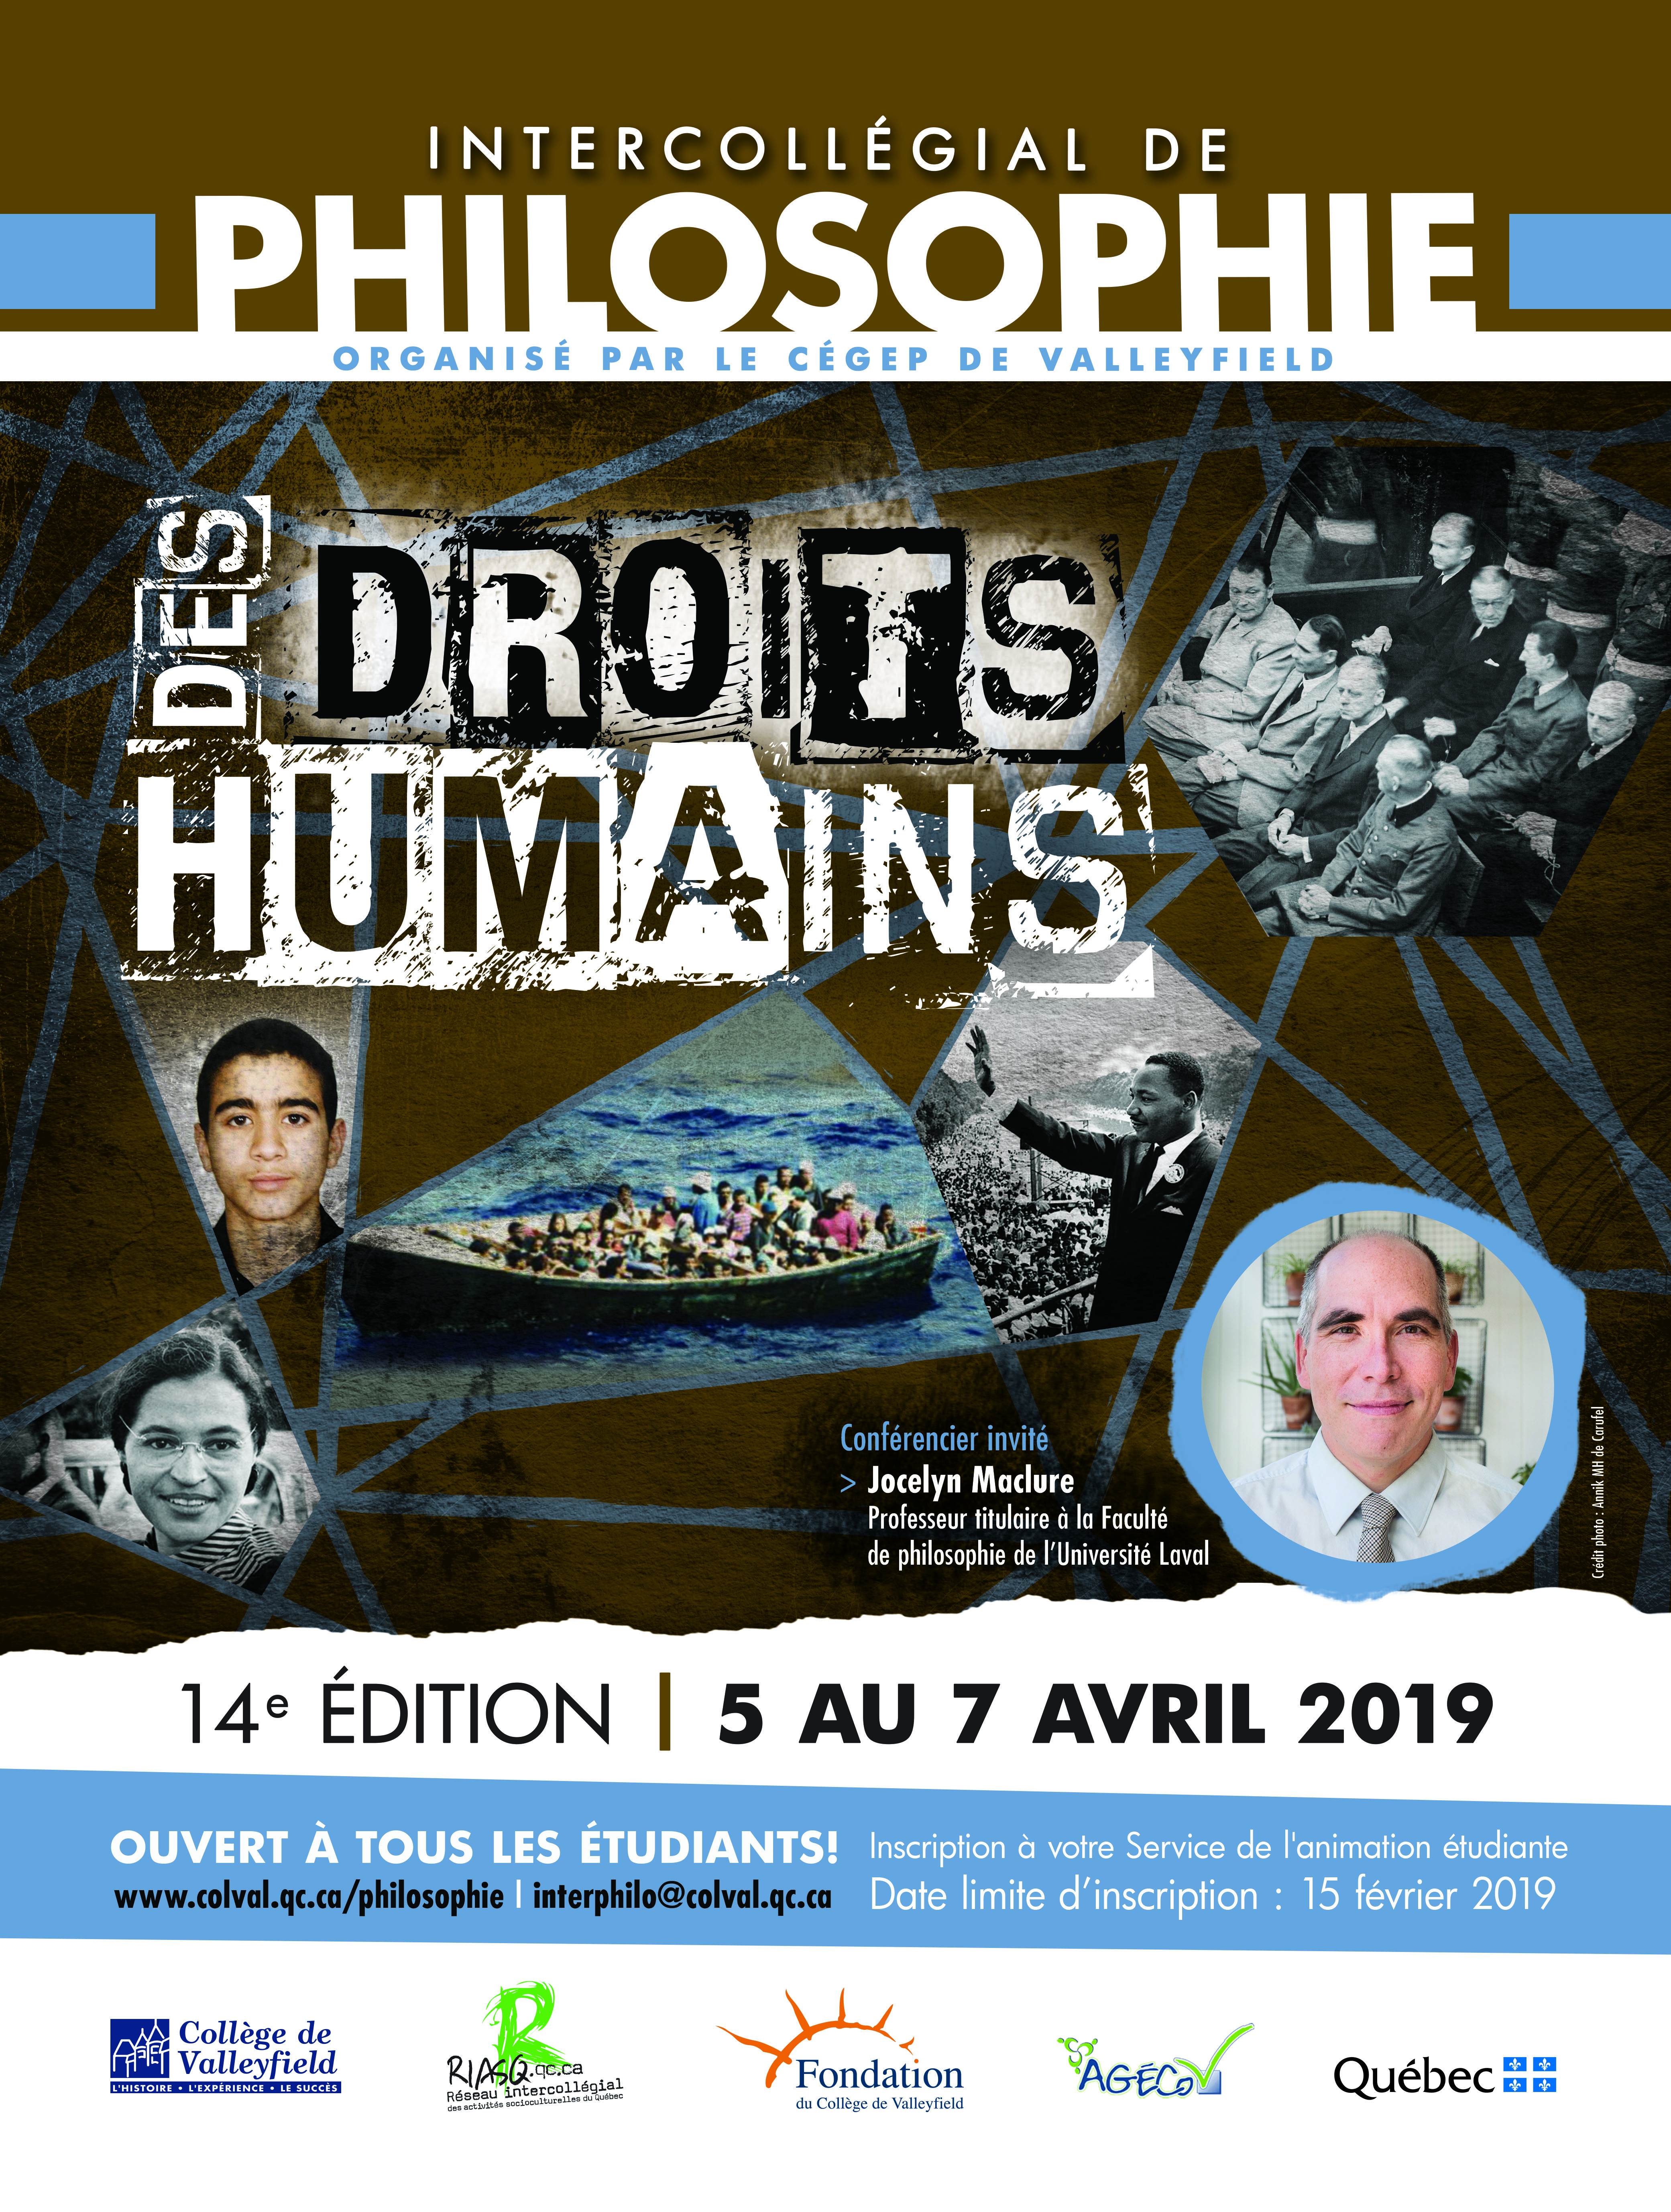 InterCPhilo 2019 affiche18x24 v5